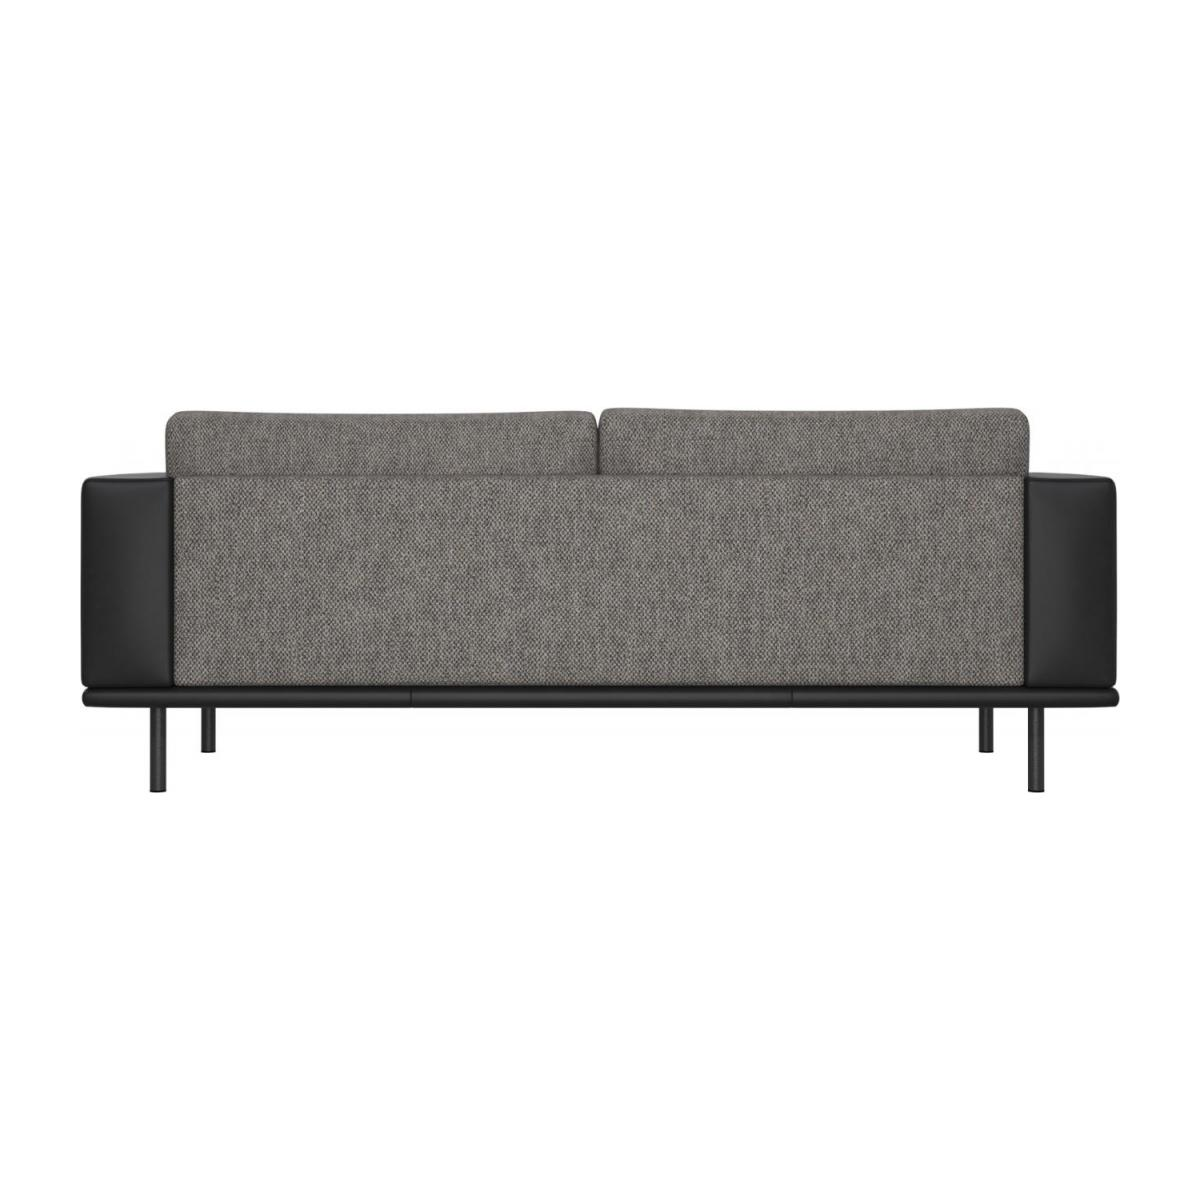 3 seater sofa in Bellagio fabric, night black with base and armrests in black leather n°3